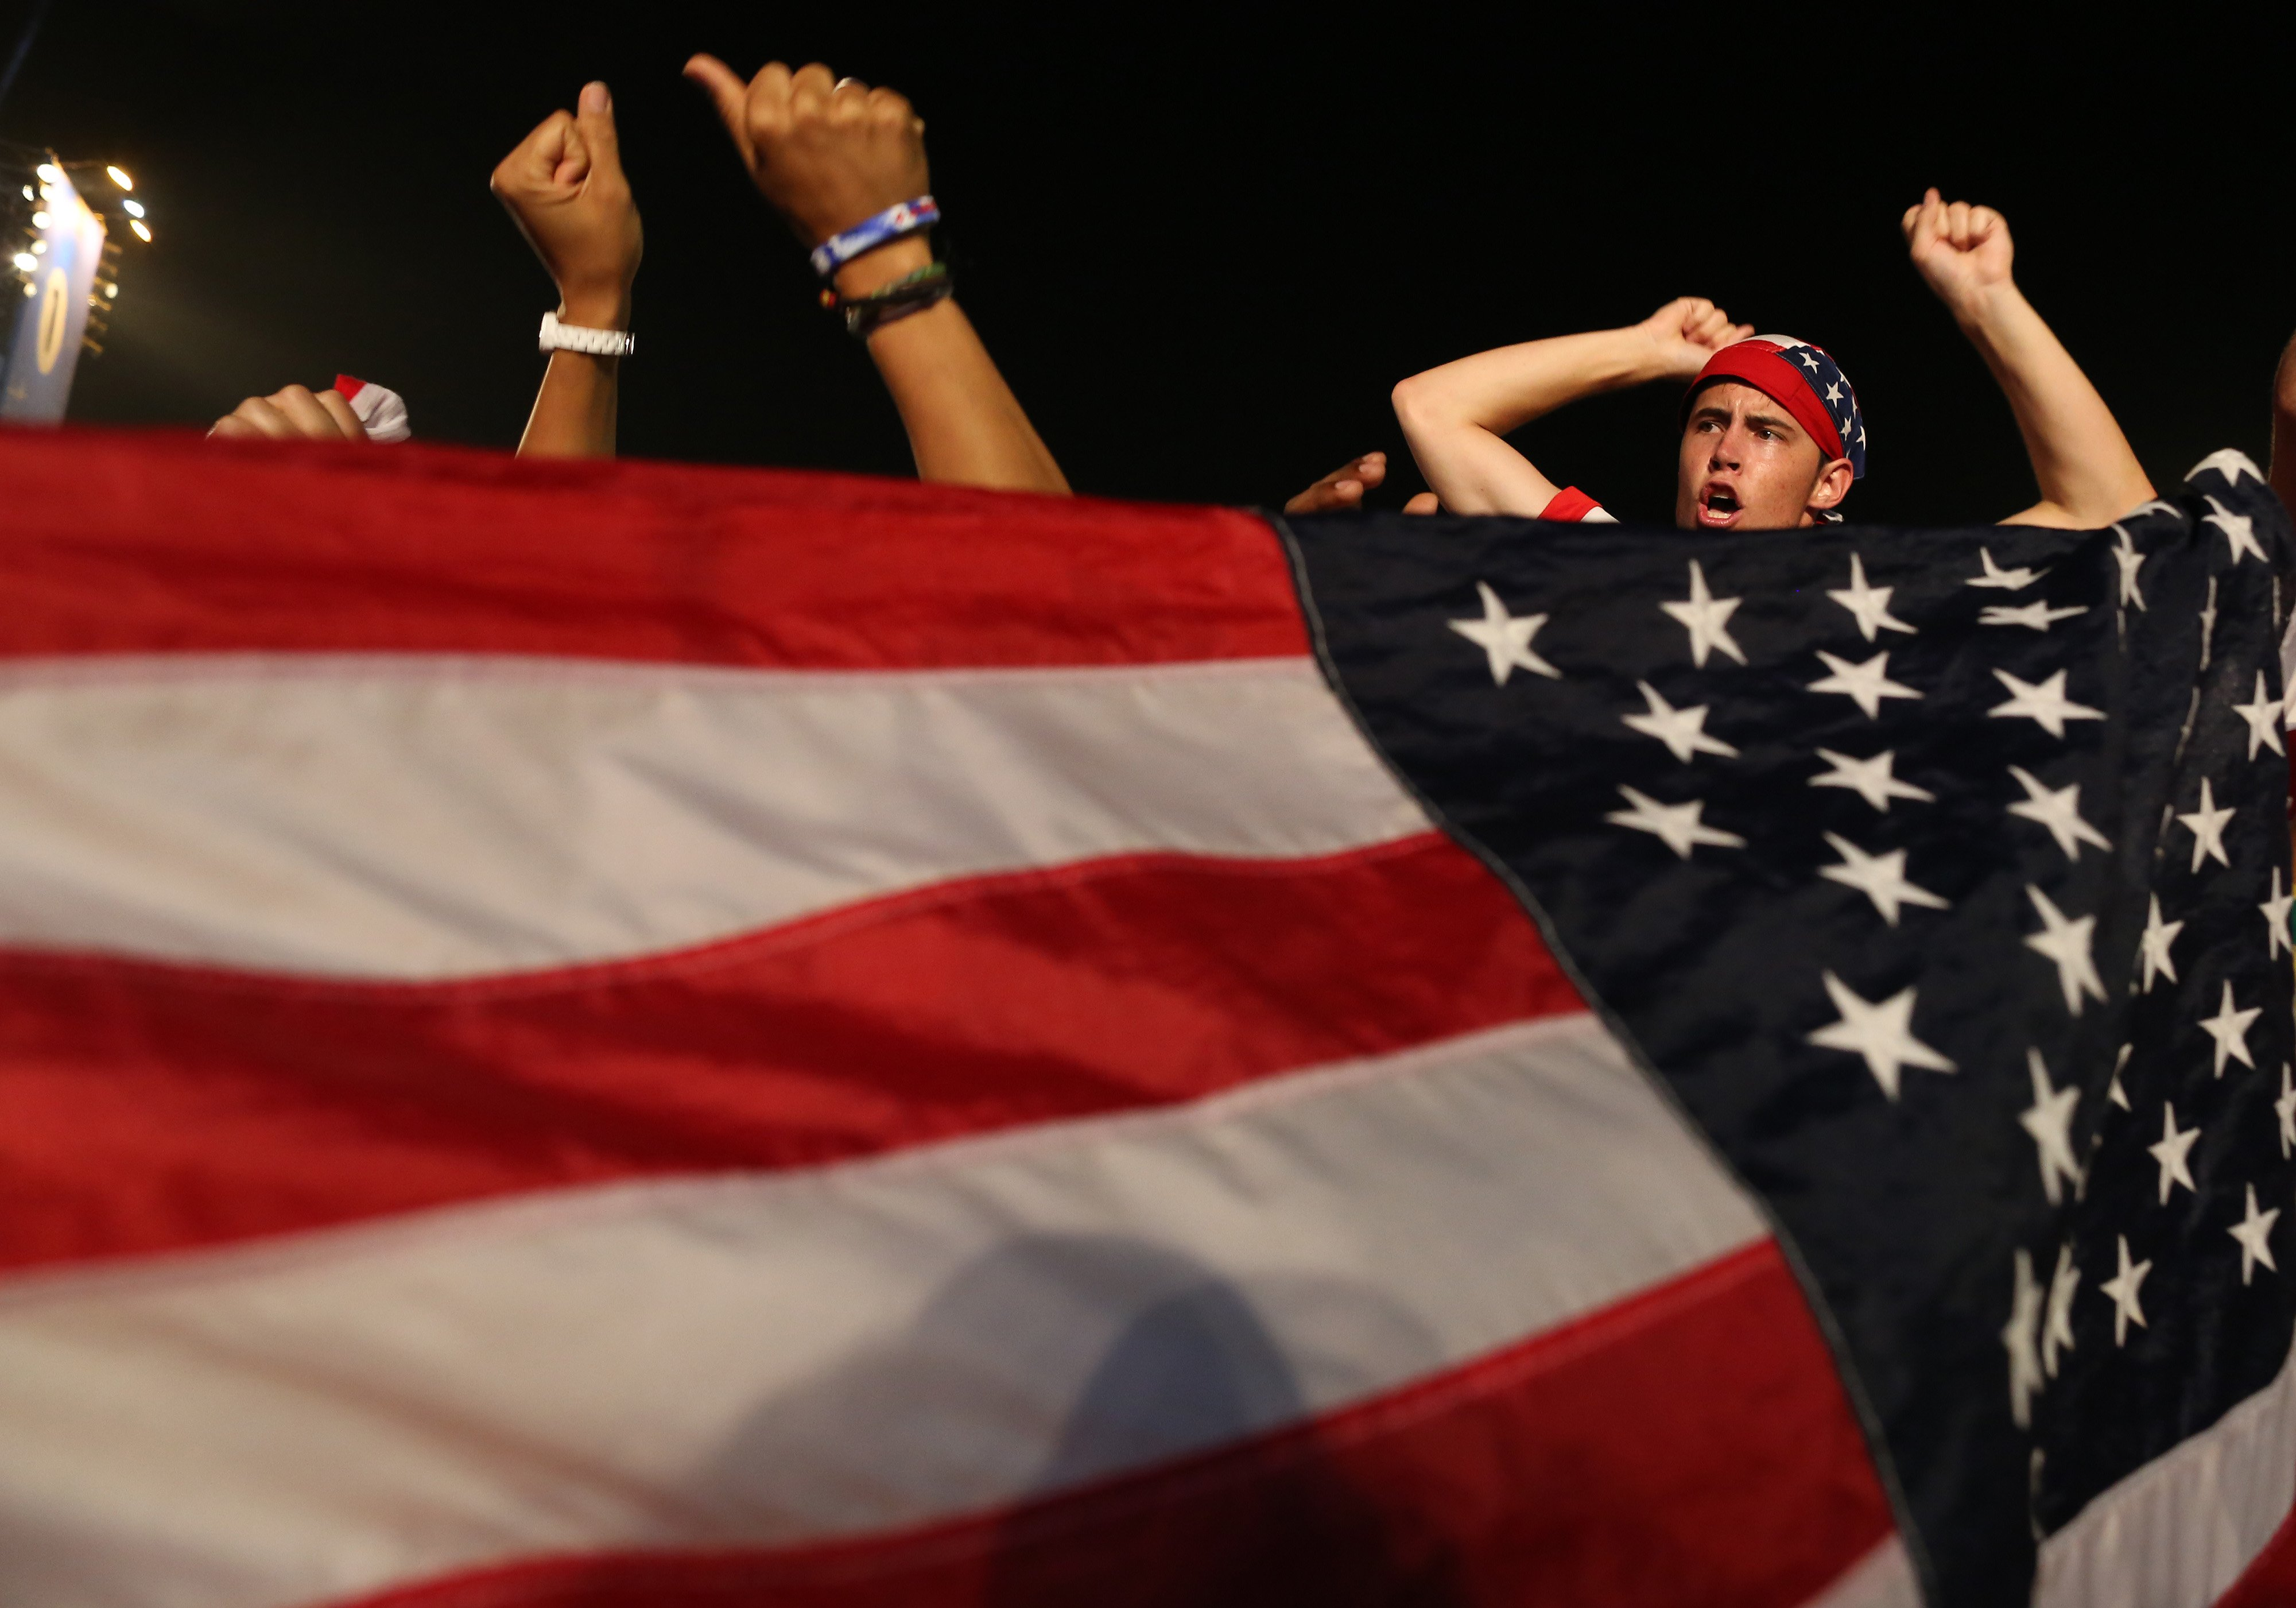 A fan of the U.S. national soccer team celebrates a victory during a live broadcast of the soccer World Cup match between the Unites States and Ghana, on Copacabana beach, Rio de Janeiro on  June 16, 2014.